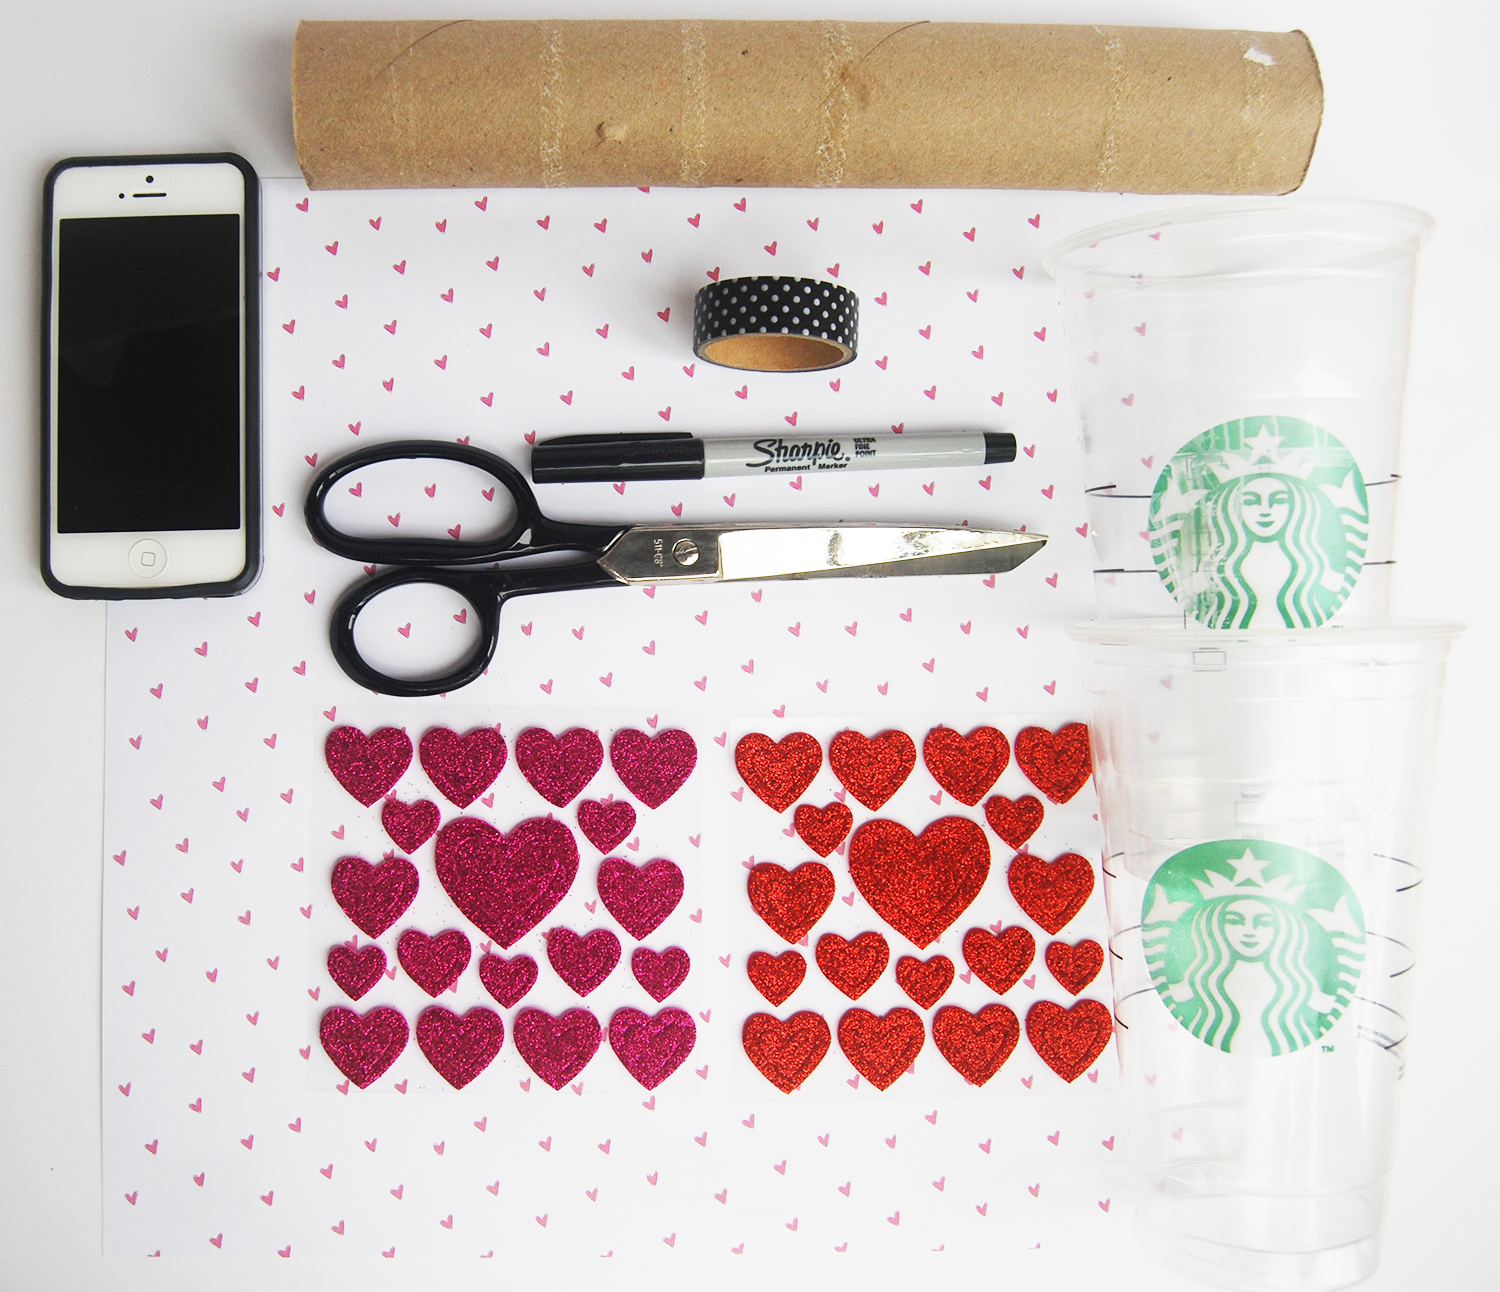 All The Supplies You Will Need To Make Your Valentine Say Anything: paper towel roll, tape, scissors,  sheet of decorative paper or printer paper, a smart phone, 2 disposable cups, a Sharpie® pen and sticker glitter hearts.